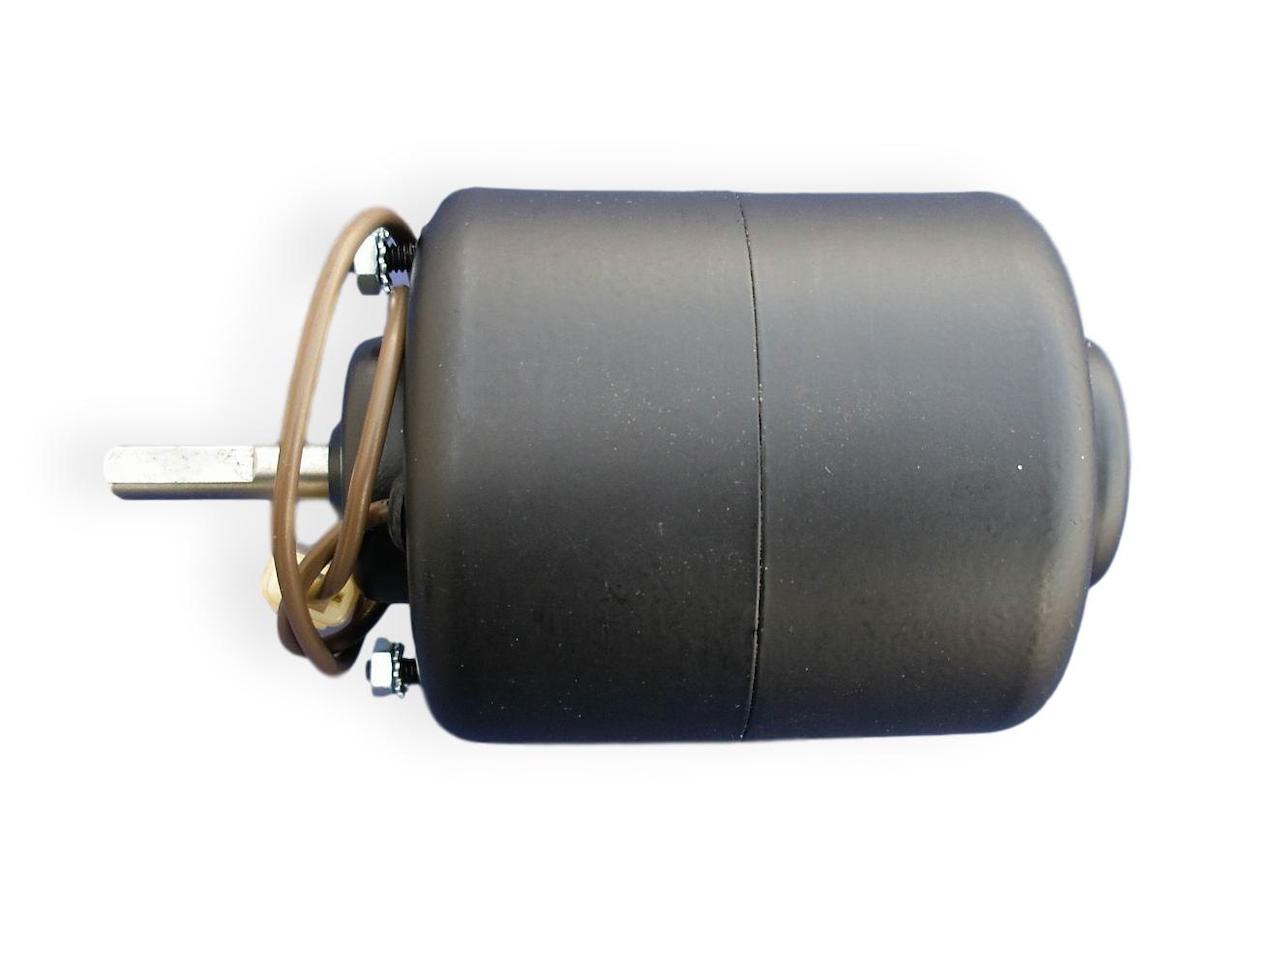 1957 Chevy Deluxe Heater Blower Motor